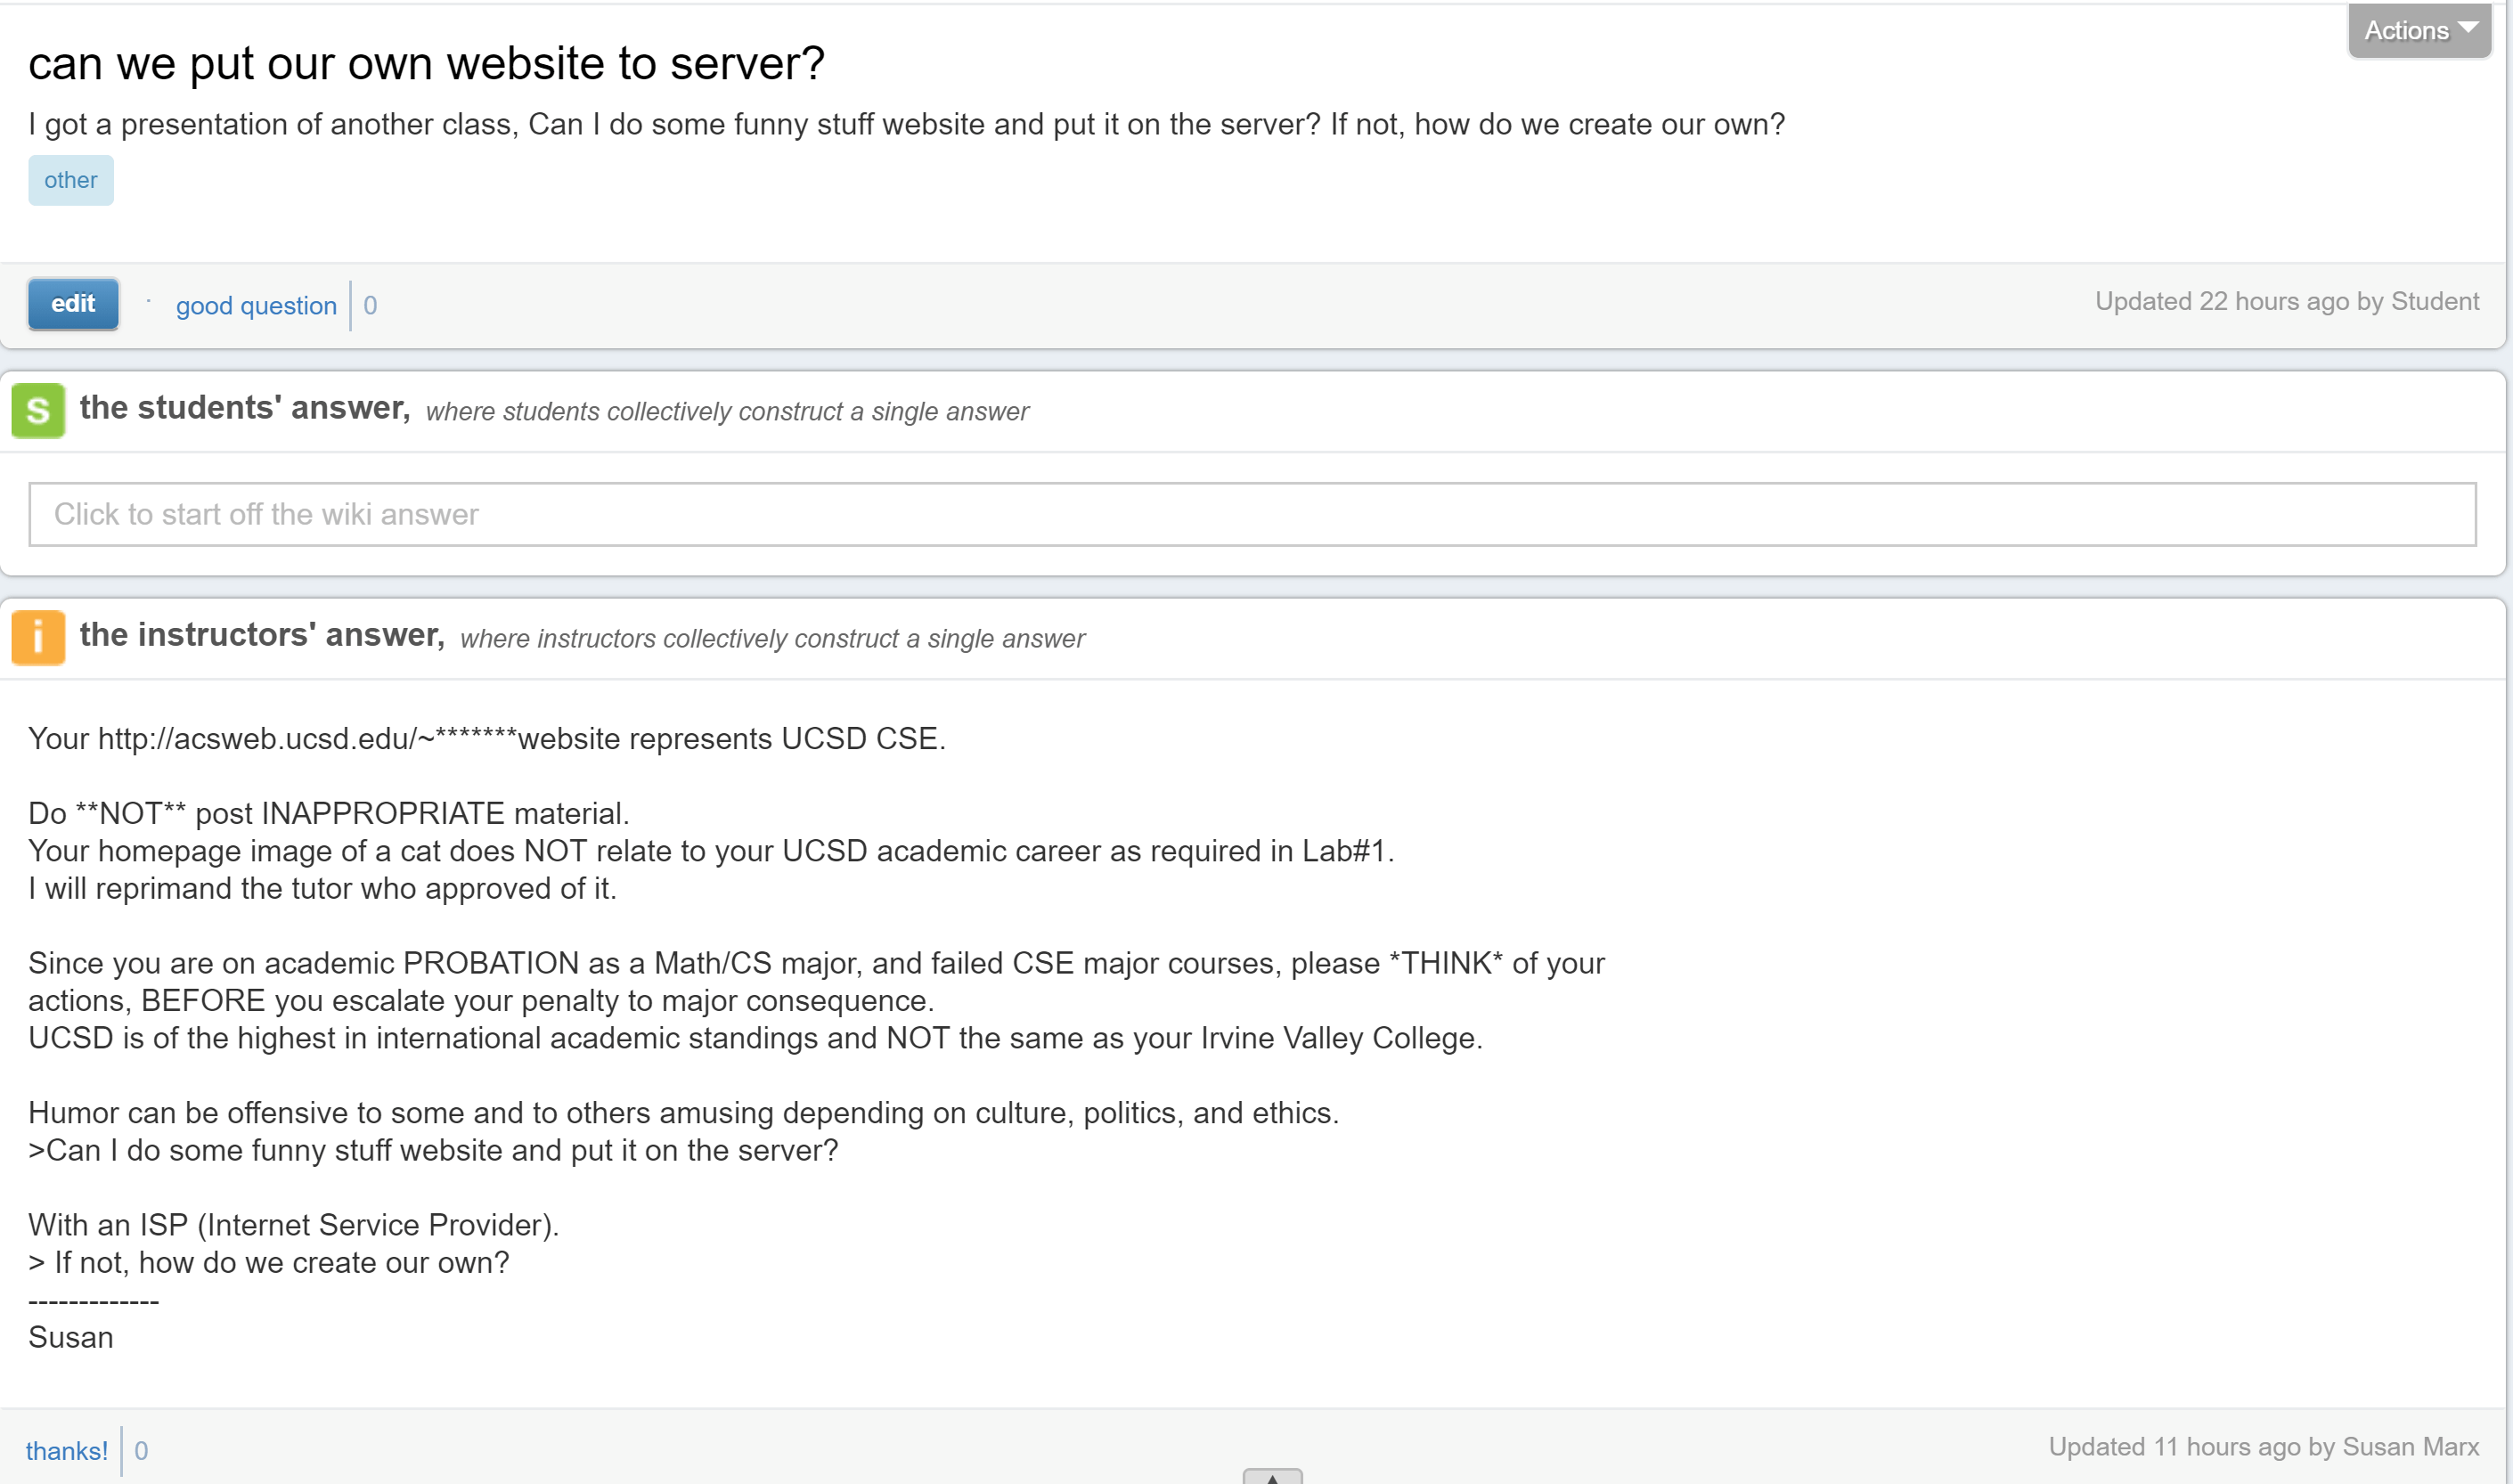 Piazza screenshot of Professor Marx's interaction with student taken from Reddit.